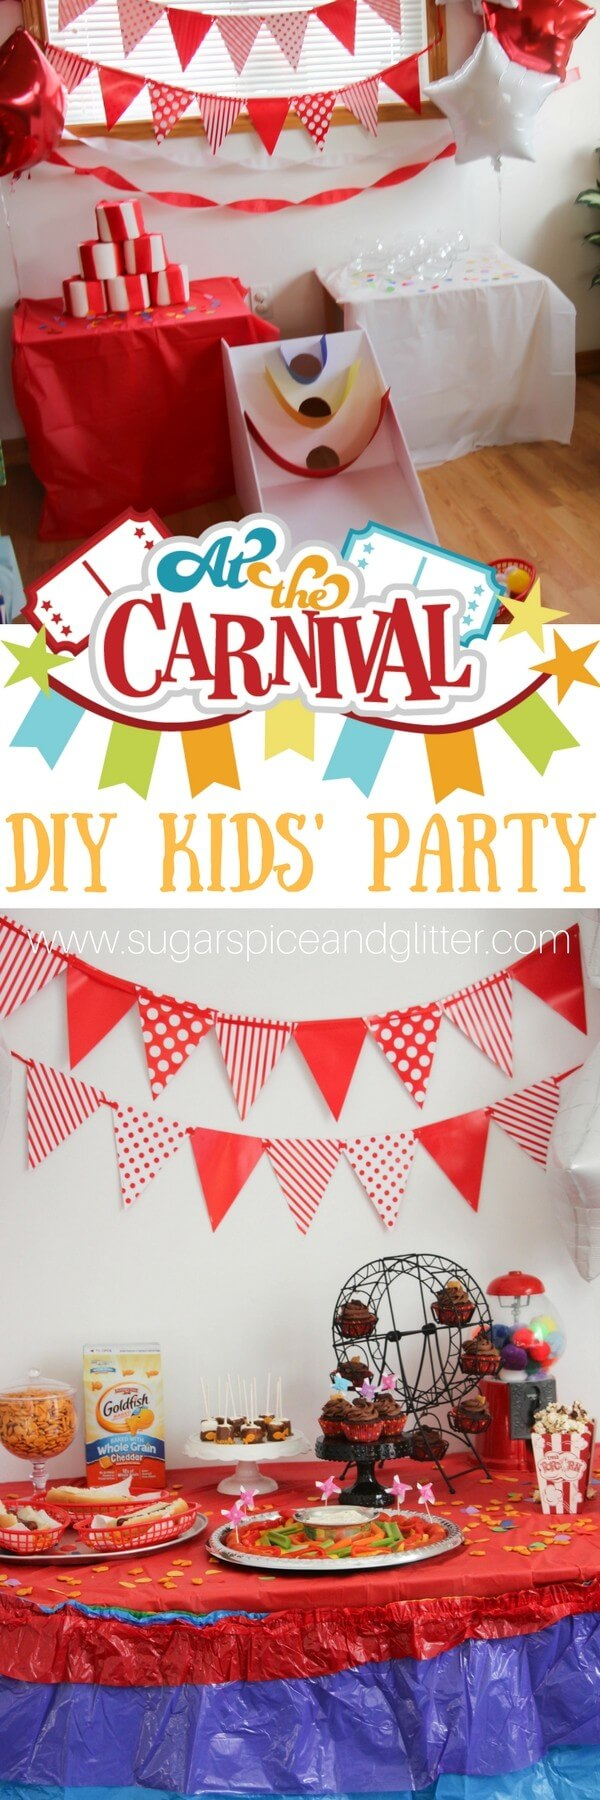 DIY Carnival Kids Party with 5 games under $5, easy themed decor and a mix of healthy and carnival-inspired treats.